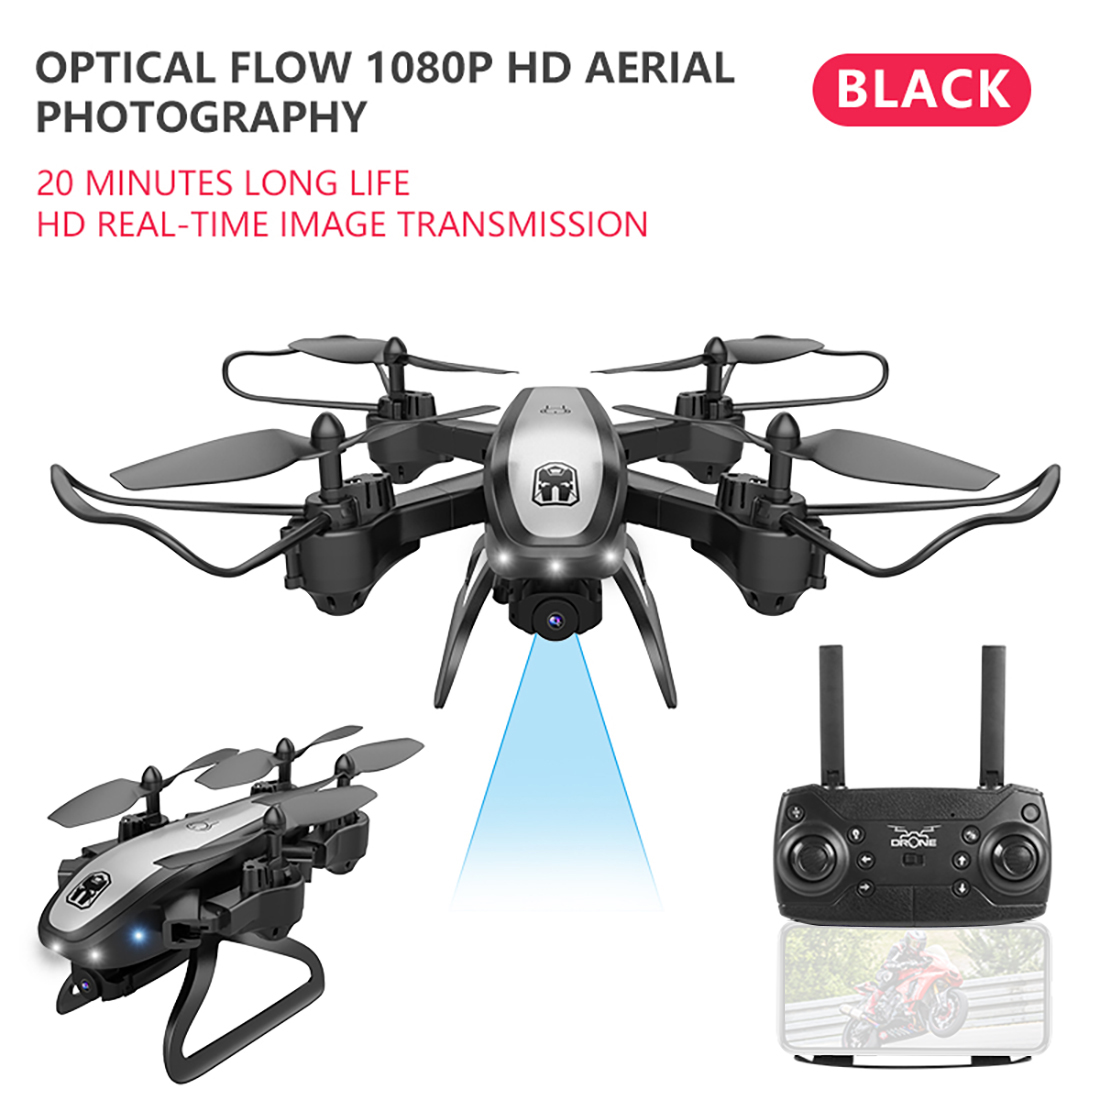 KY909 4K HD Camera Drone FPV WIFI Optical Flow Positioning RC Aircraft Foldable Altitude Hold Long Battery Life Kids Toys